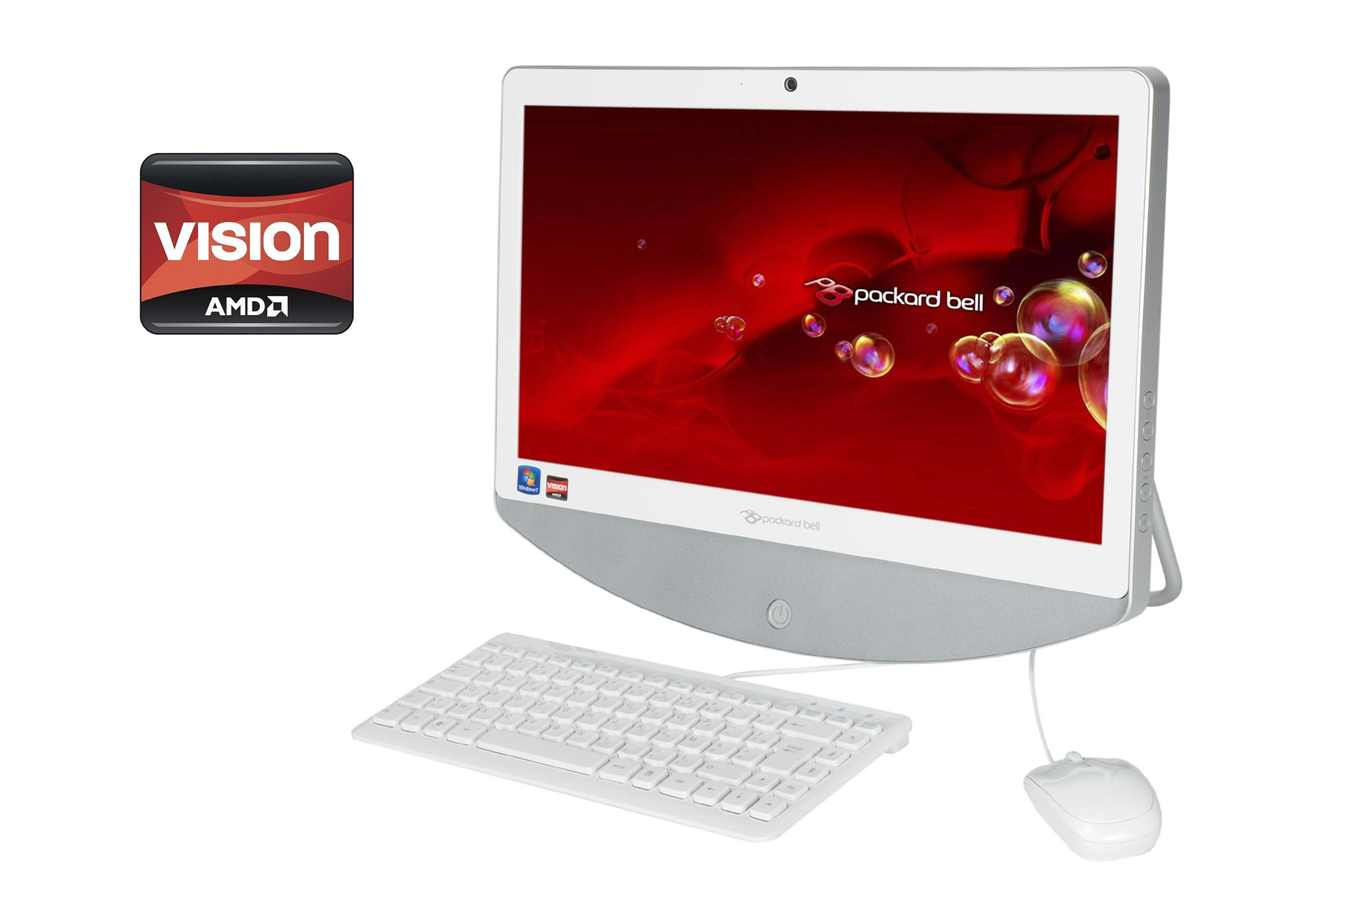 Pc de bureau packard bell one two s a4003 fr - Ordinateur de bureau packard bell ...